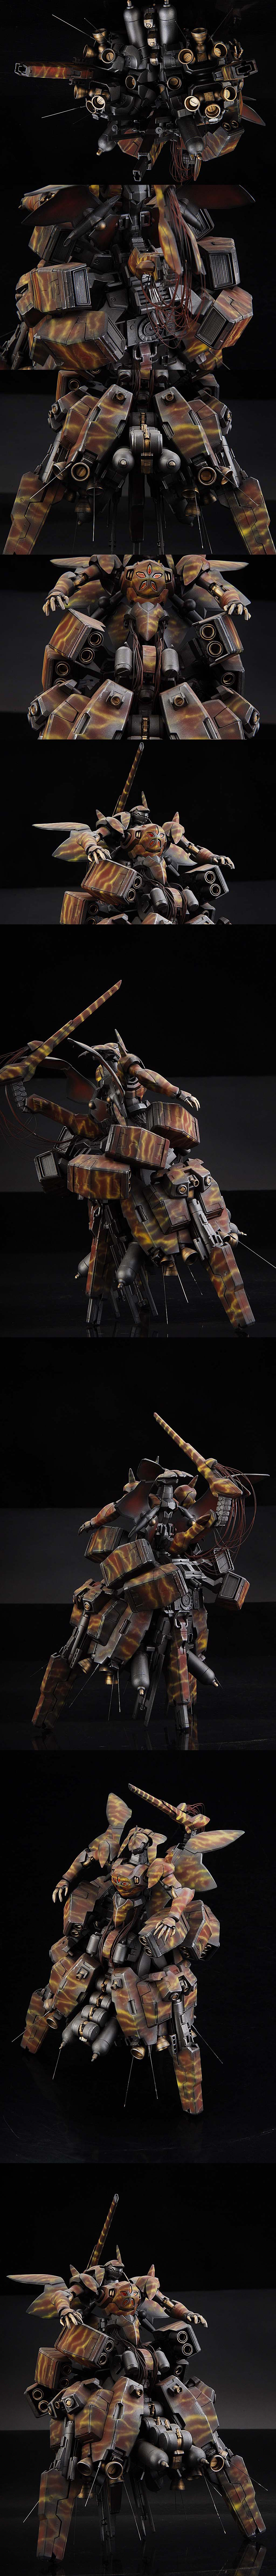 csrtx414's AMAZING CUSTOM: 1/144 AGE MA BAQTO. Full Photo REVIEW, Info